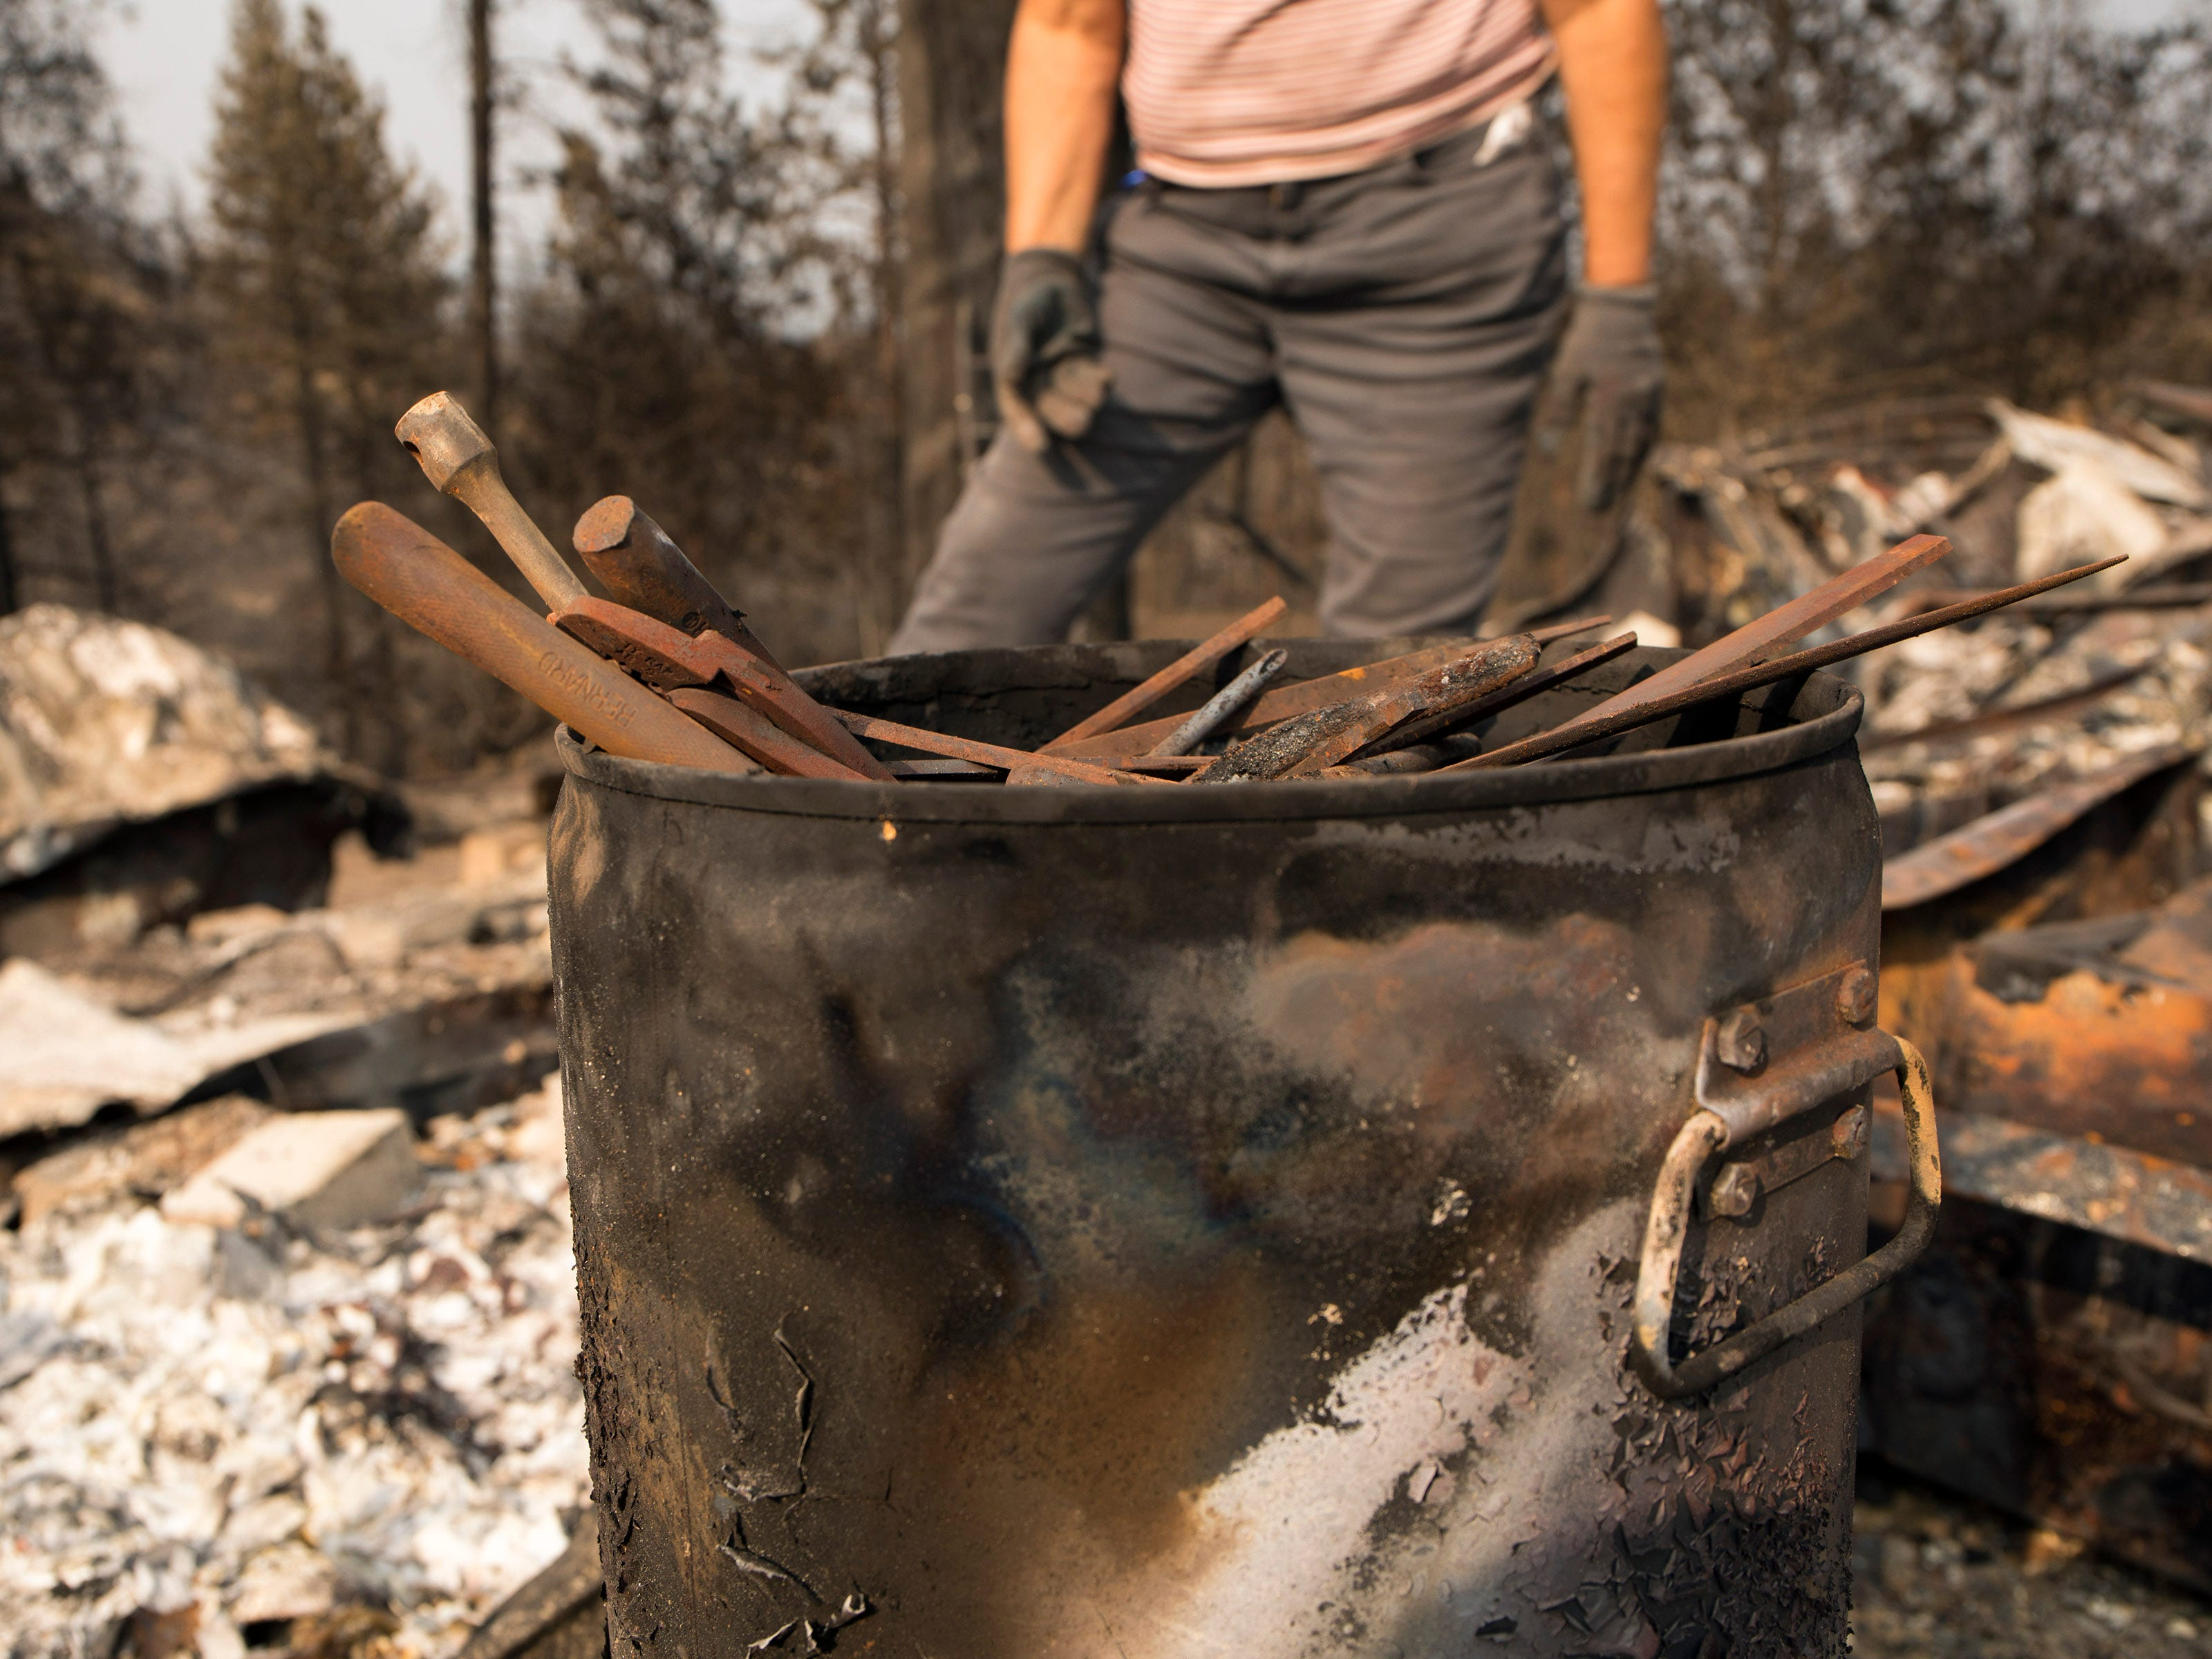 Marci Fernandes, 62 searches the ashes of her home destroyed in the Carr fire for her husband's tools in Keswick, Calif., Saturday, August 26, 2018.  Fernandes lost her husband earlier this year and her mother immediately after the fire.